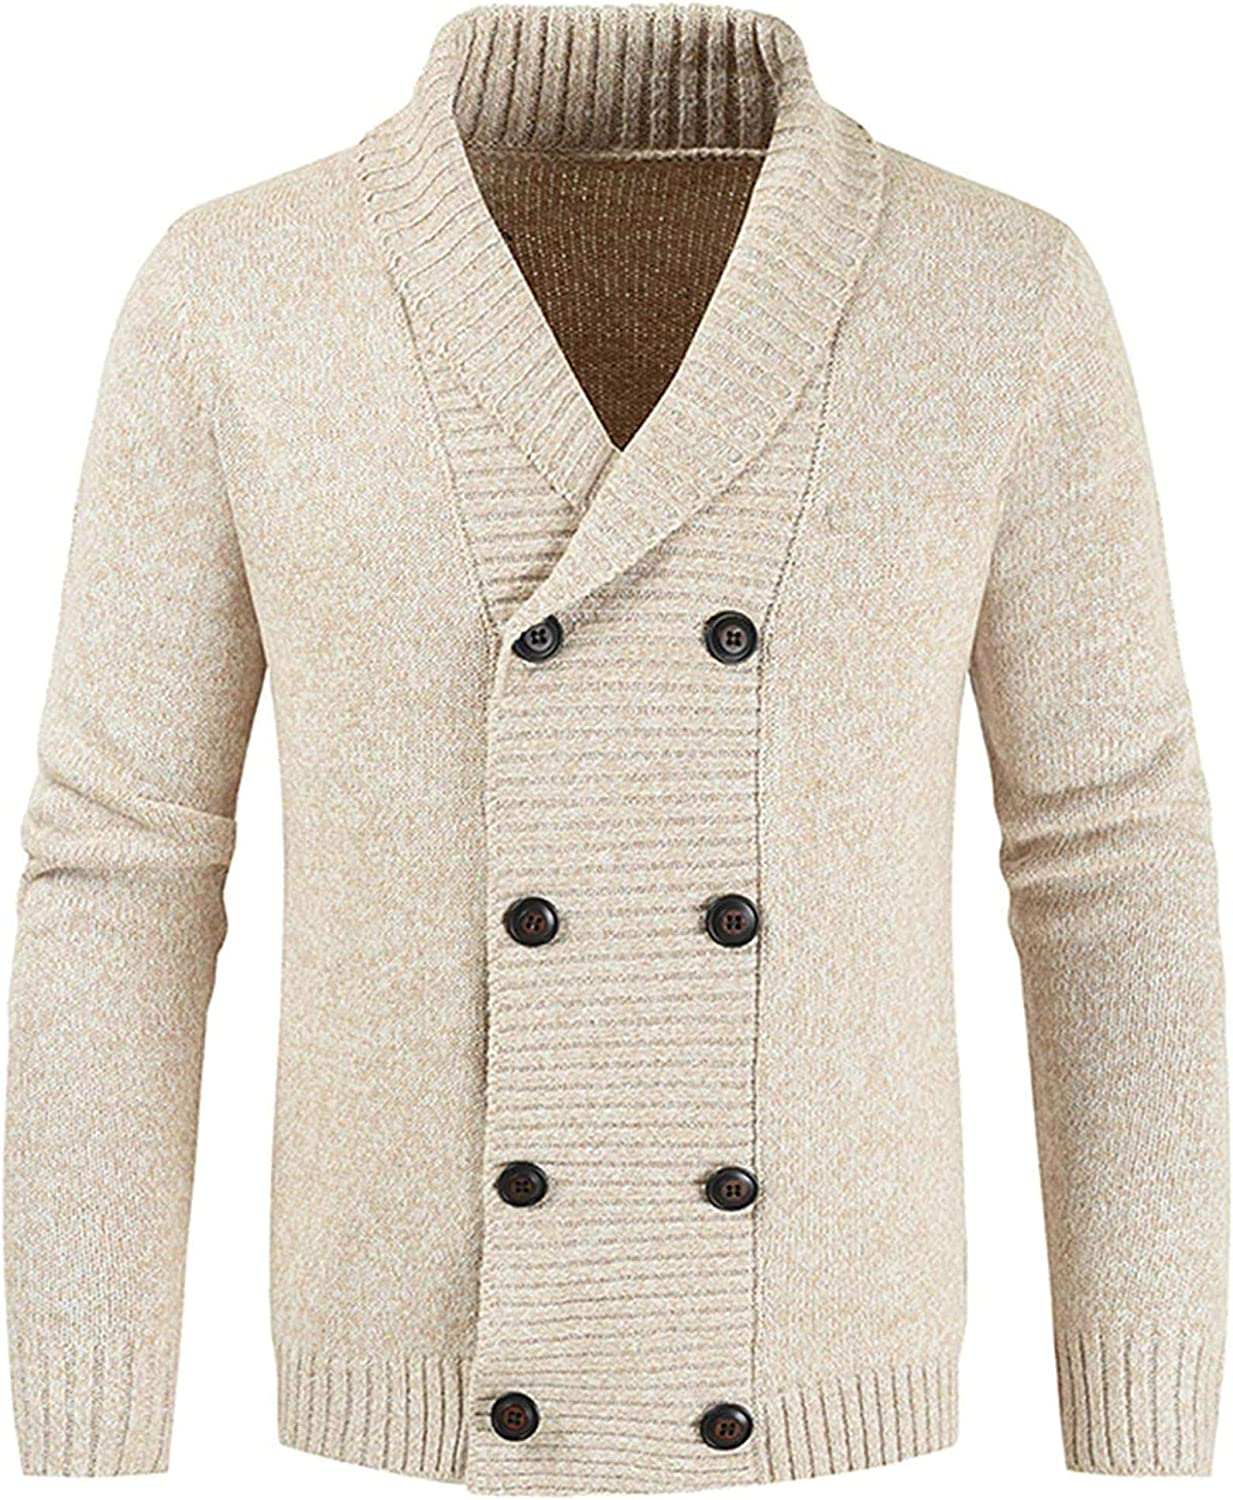 Men Knitted Cardigan Sweaters Winter Sweaters Casual Double-Breasted Cardigan Knitwears